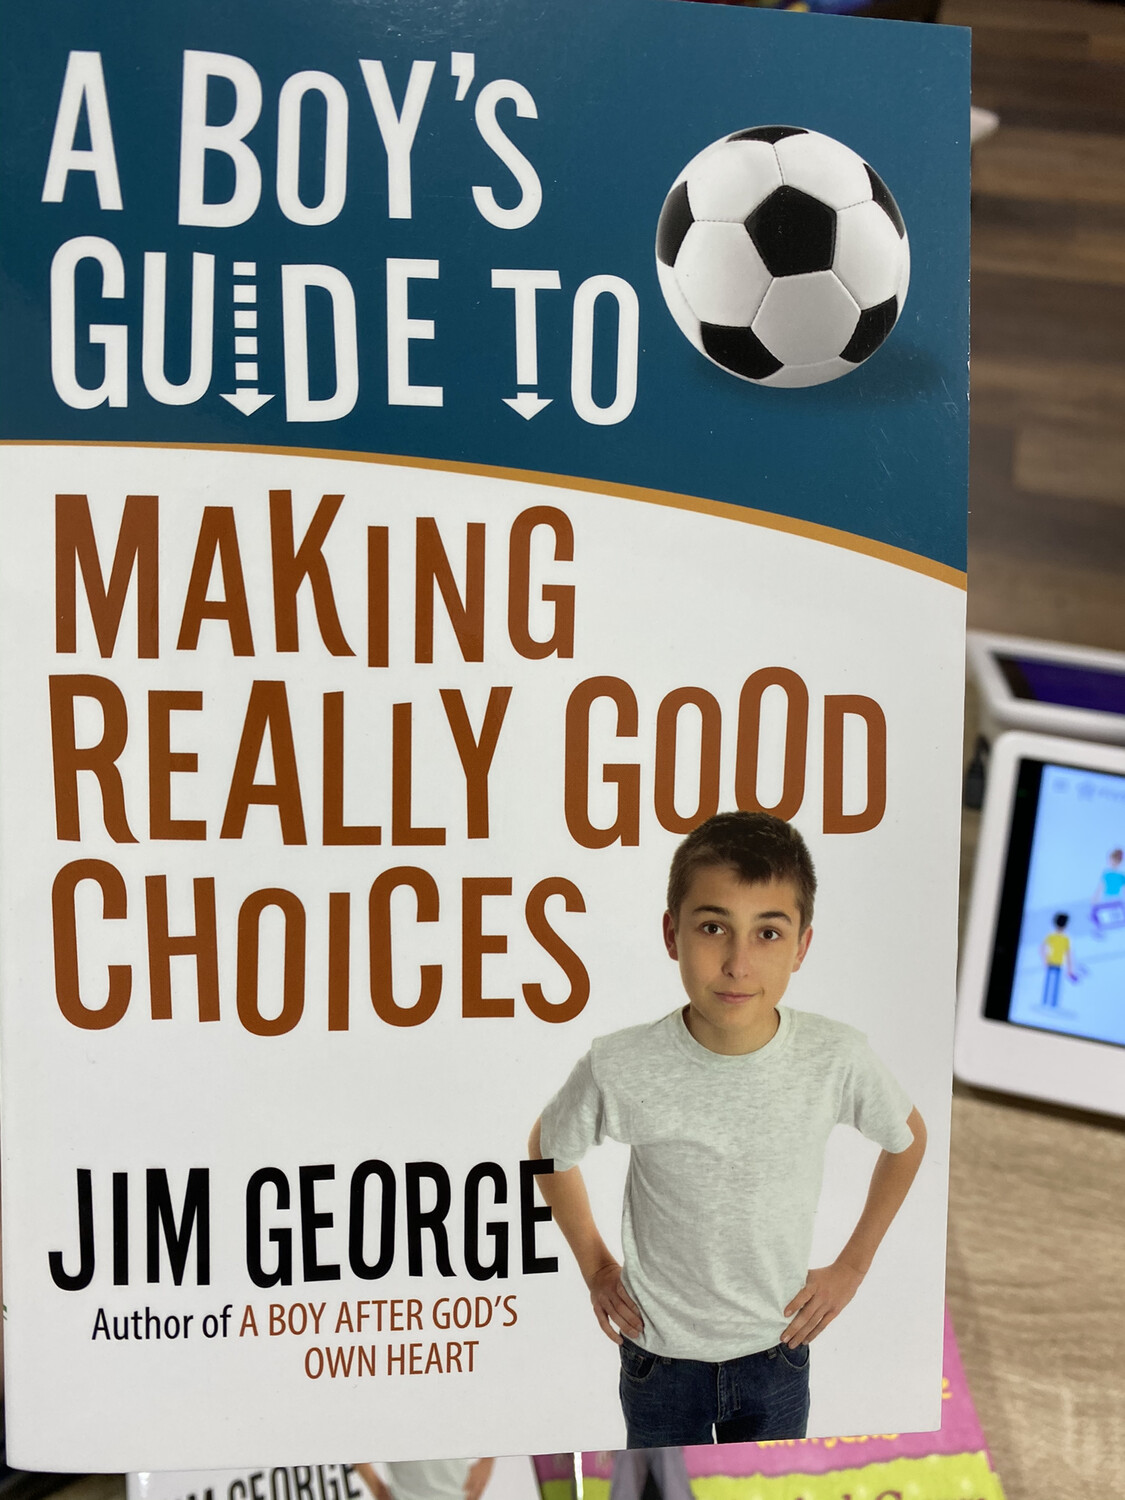 GEORGE, A Boy's Guide To Making Really Good Choices